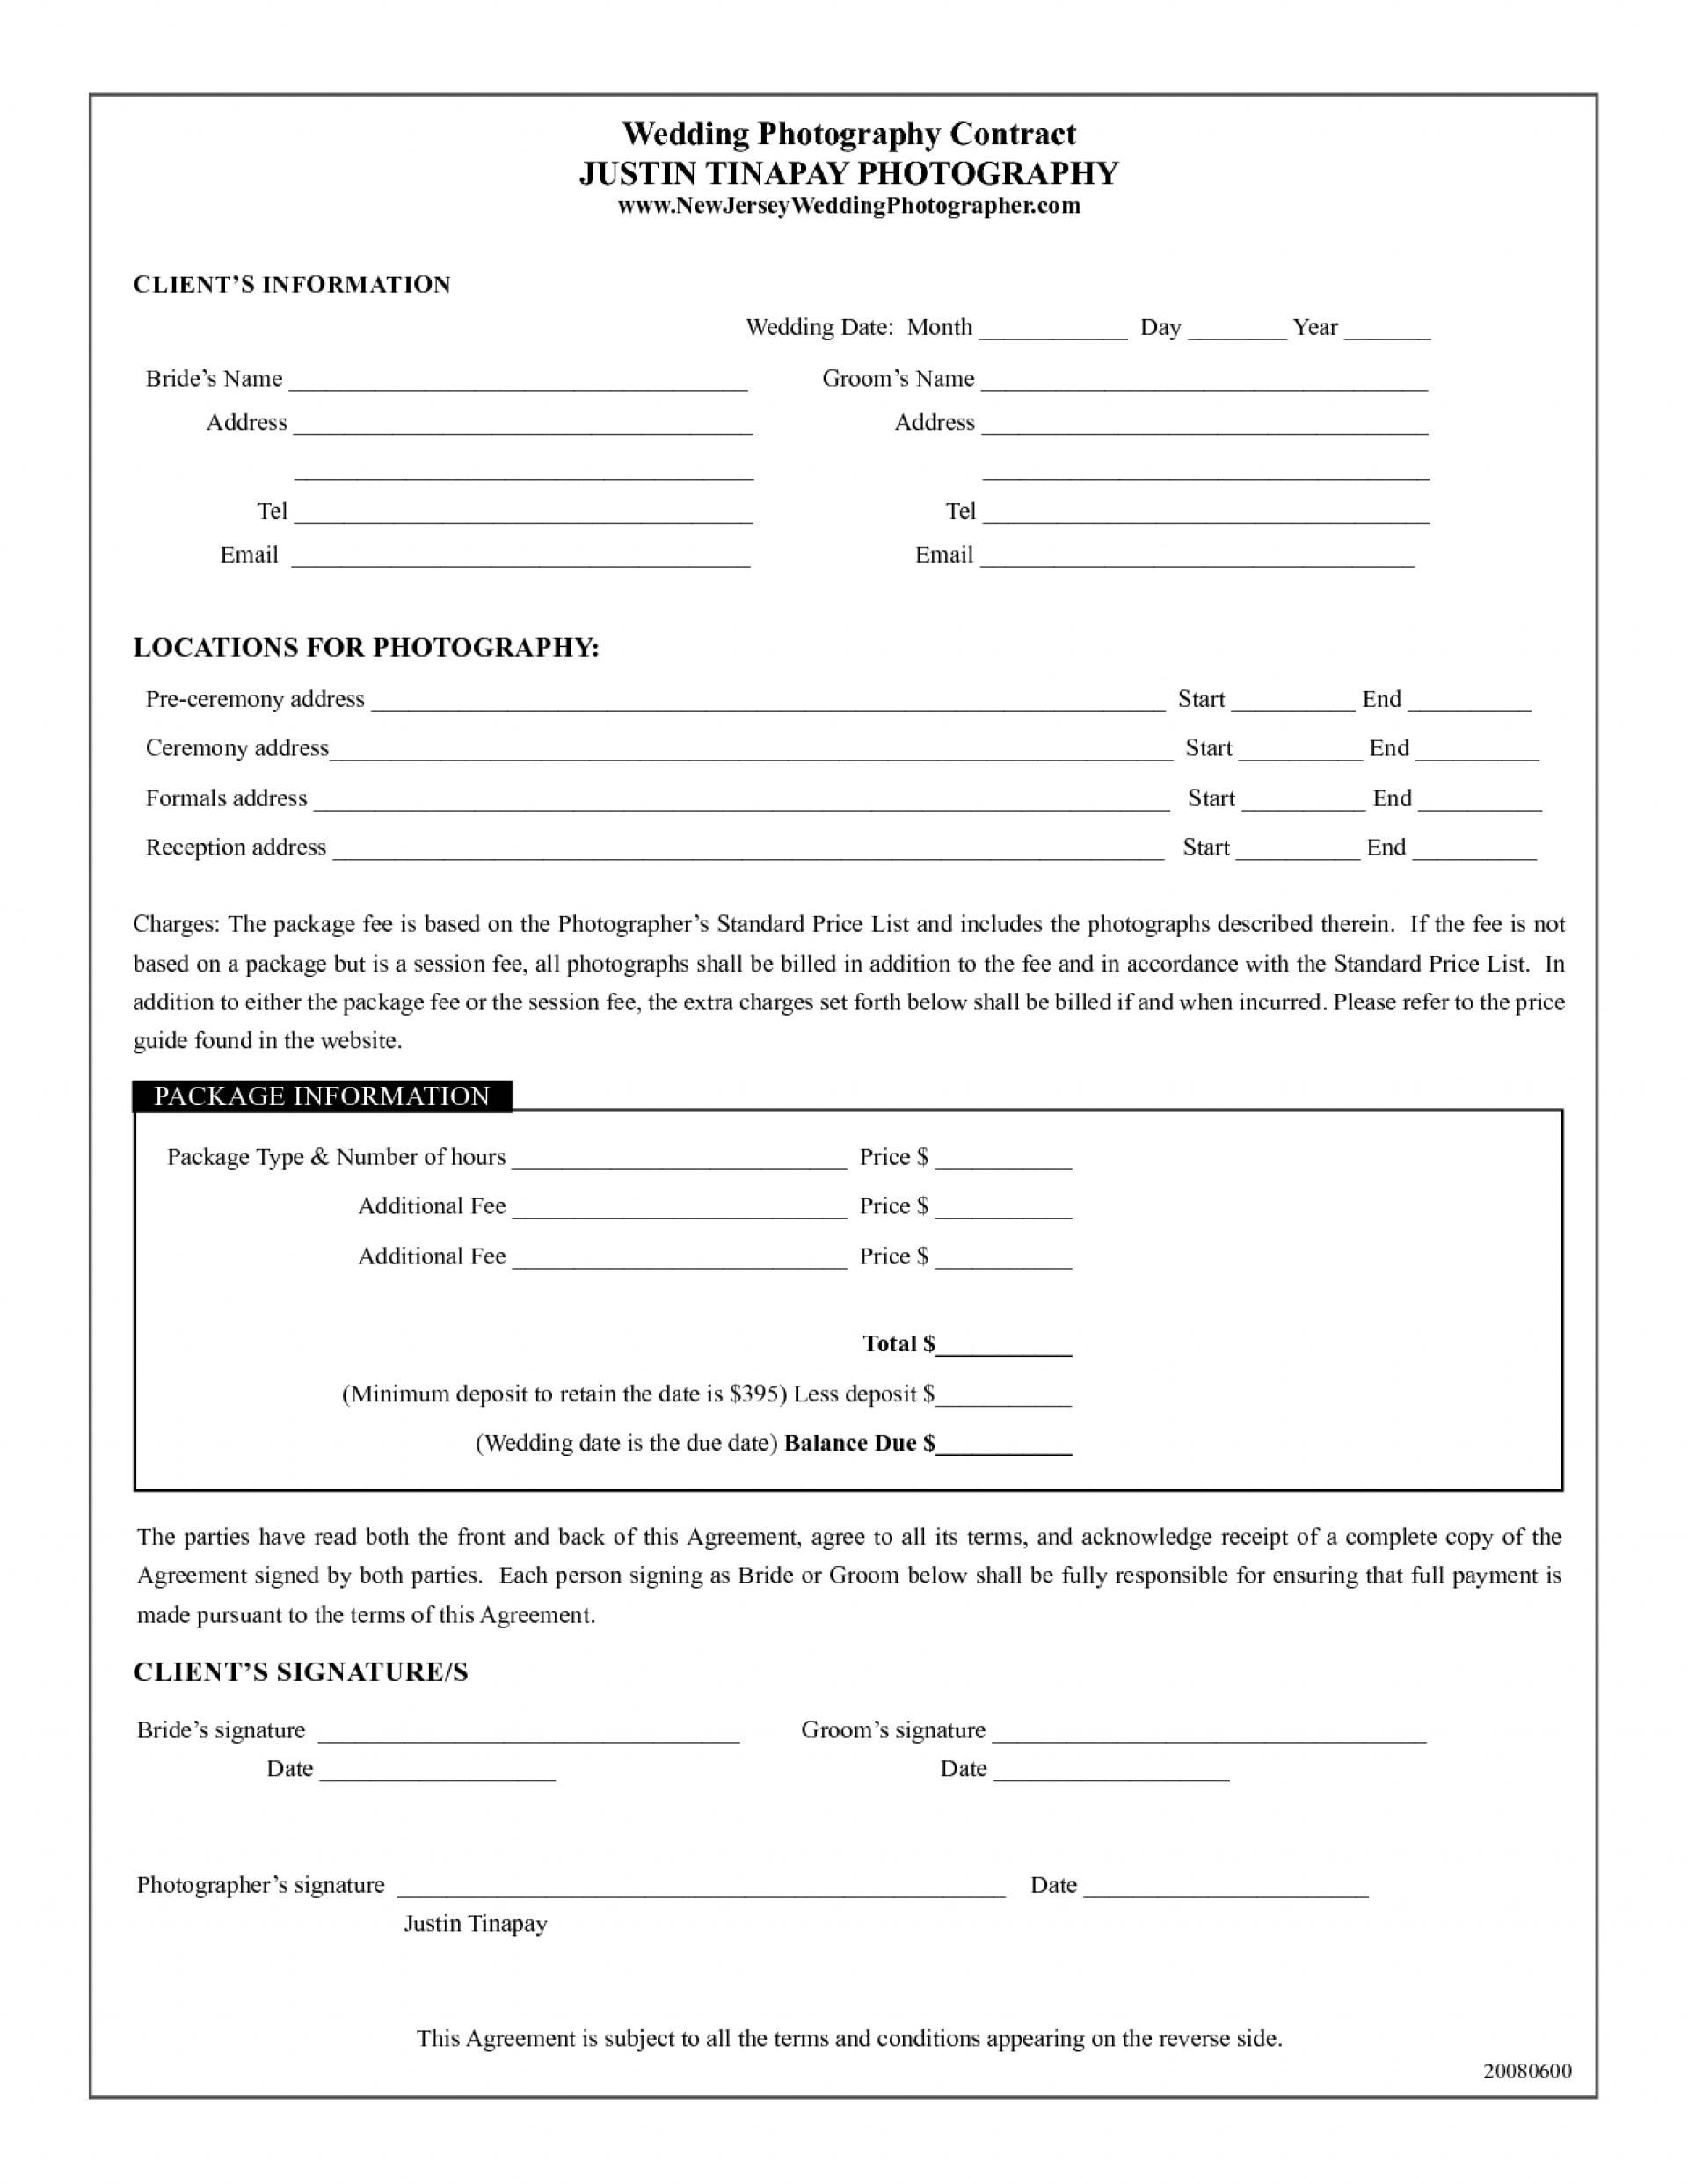 Wedding Photography Contract Template Pdf